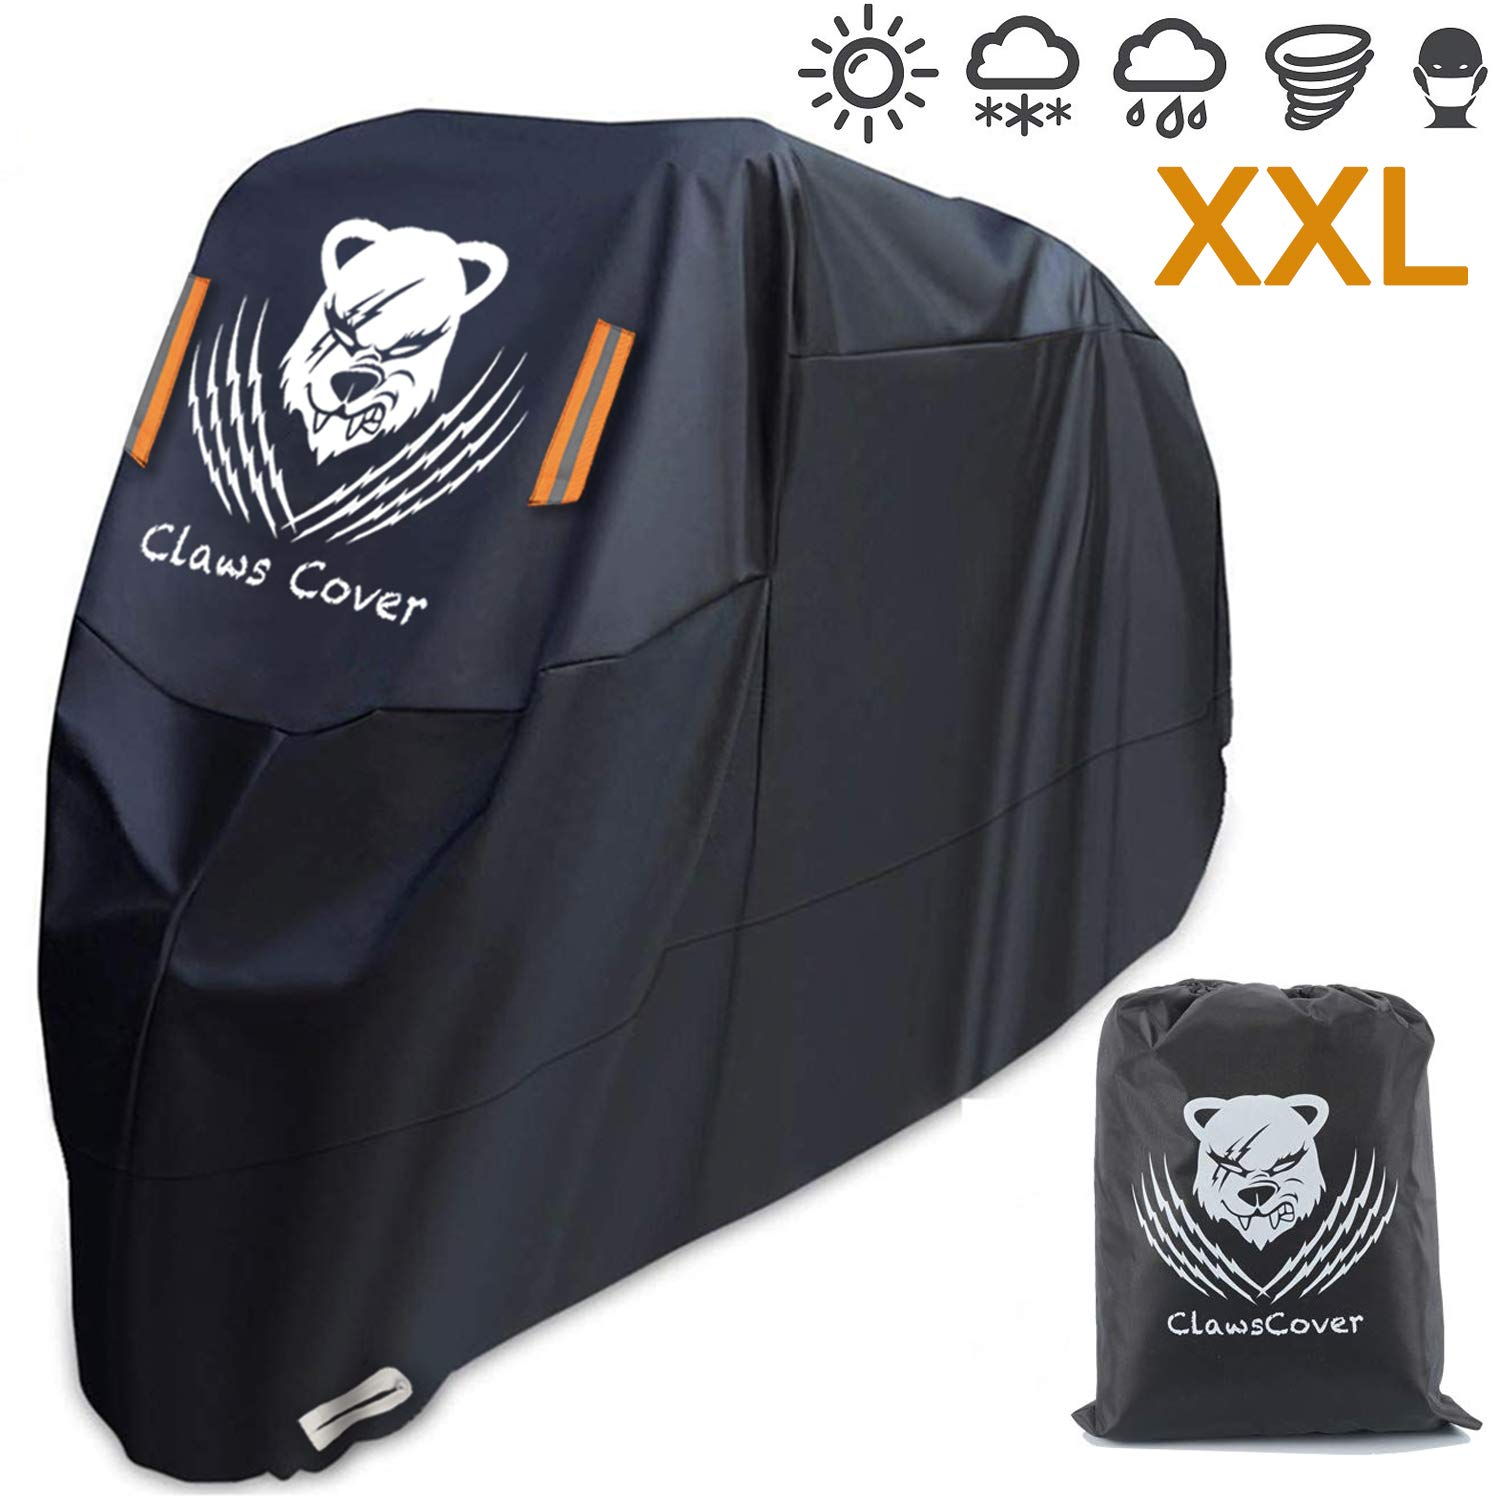 2019 Best Motorcycle Covers Waterproof 104 Inches XXL Heavy Duty All Season Outdoor Protection Durable Oxford Touring Cruisers Bike Covers for Harley Kawasaki Suzuki-ClawsCover